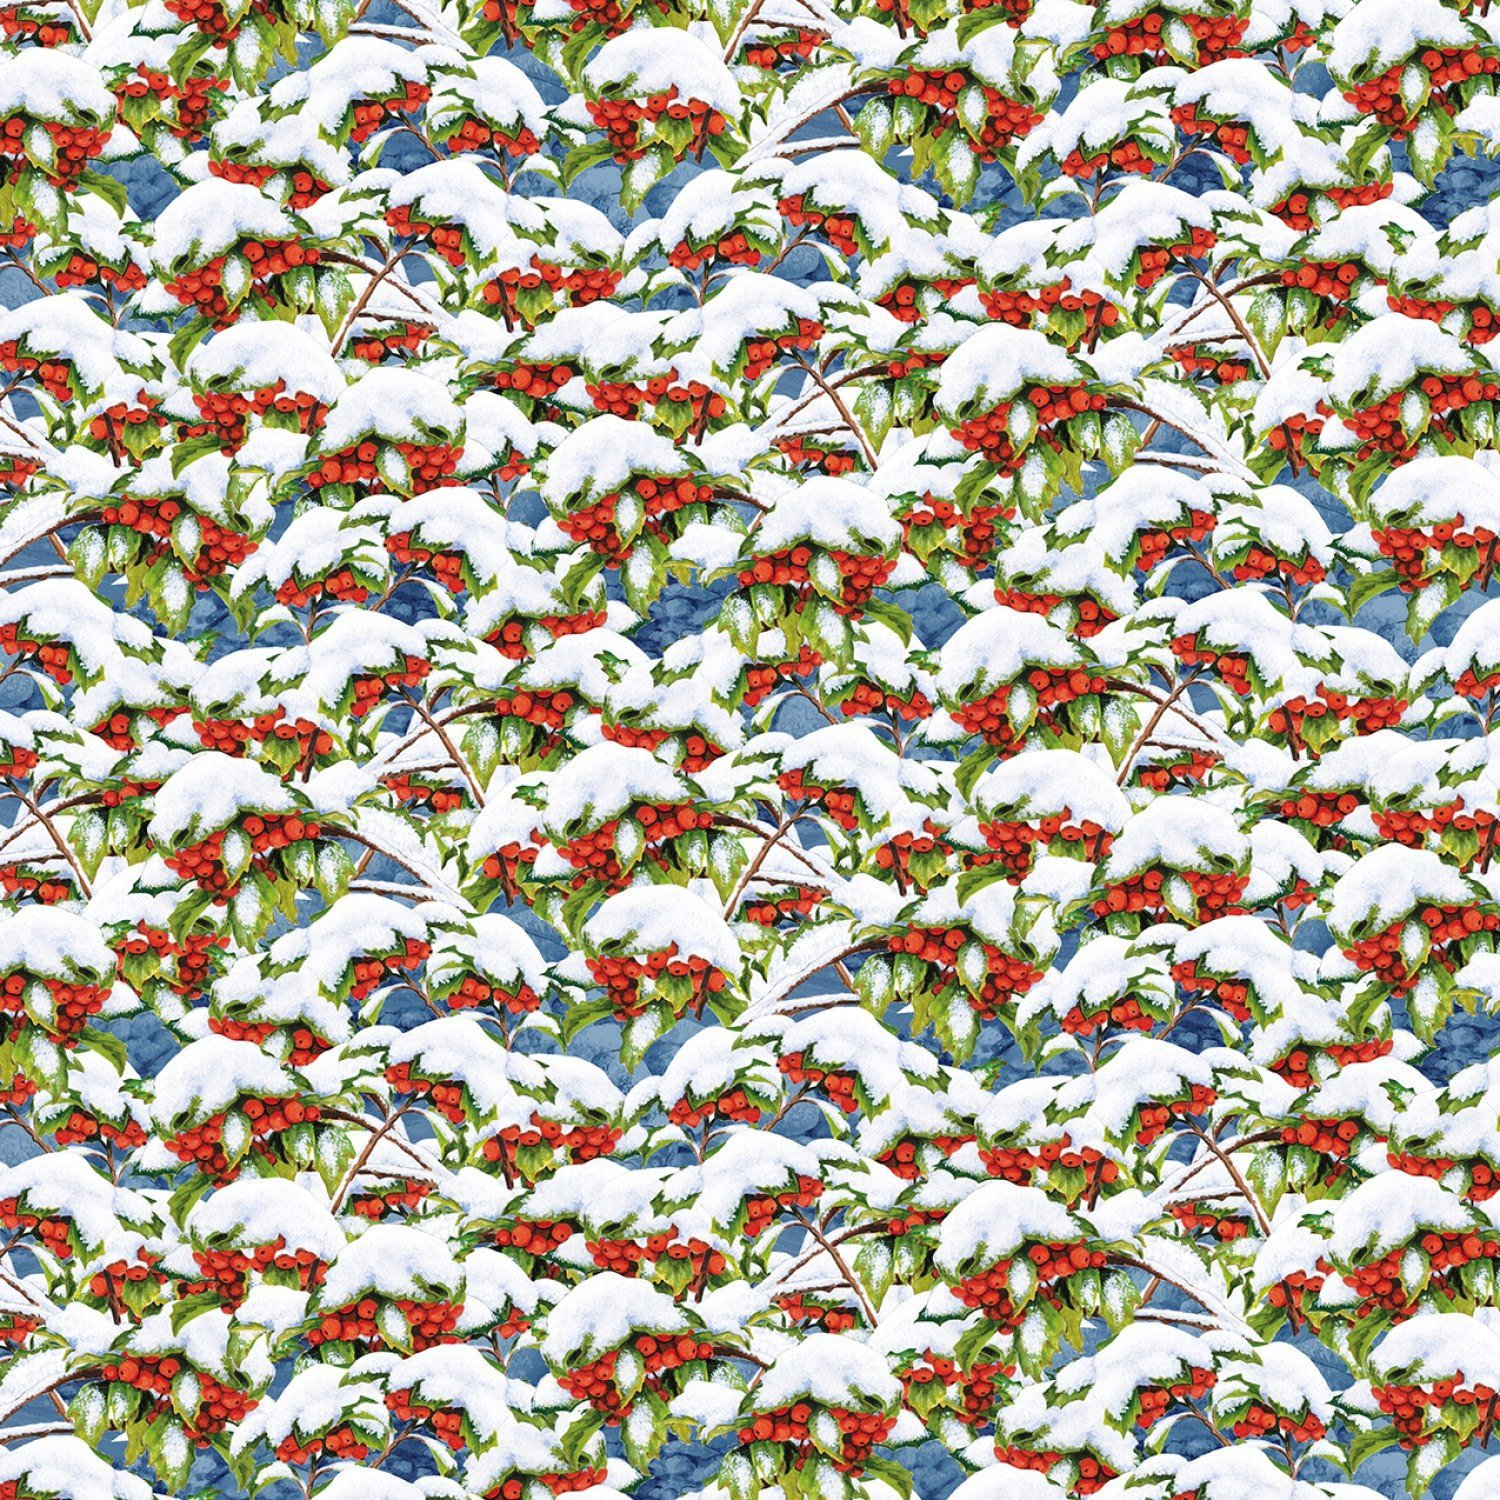 Quiet Bunny and Noisy Puppy Cotton Fabric